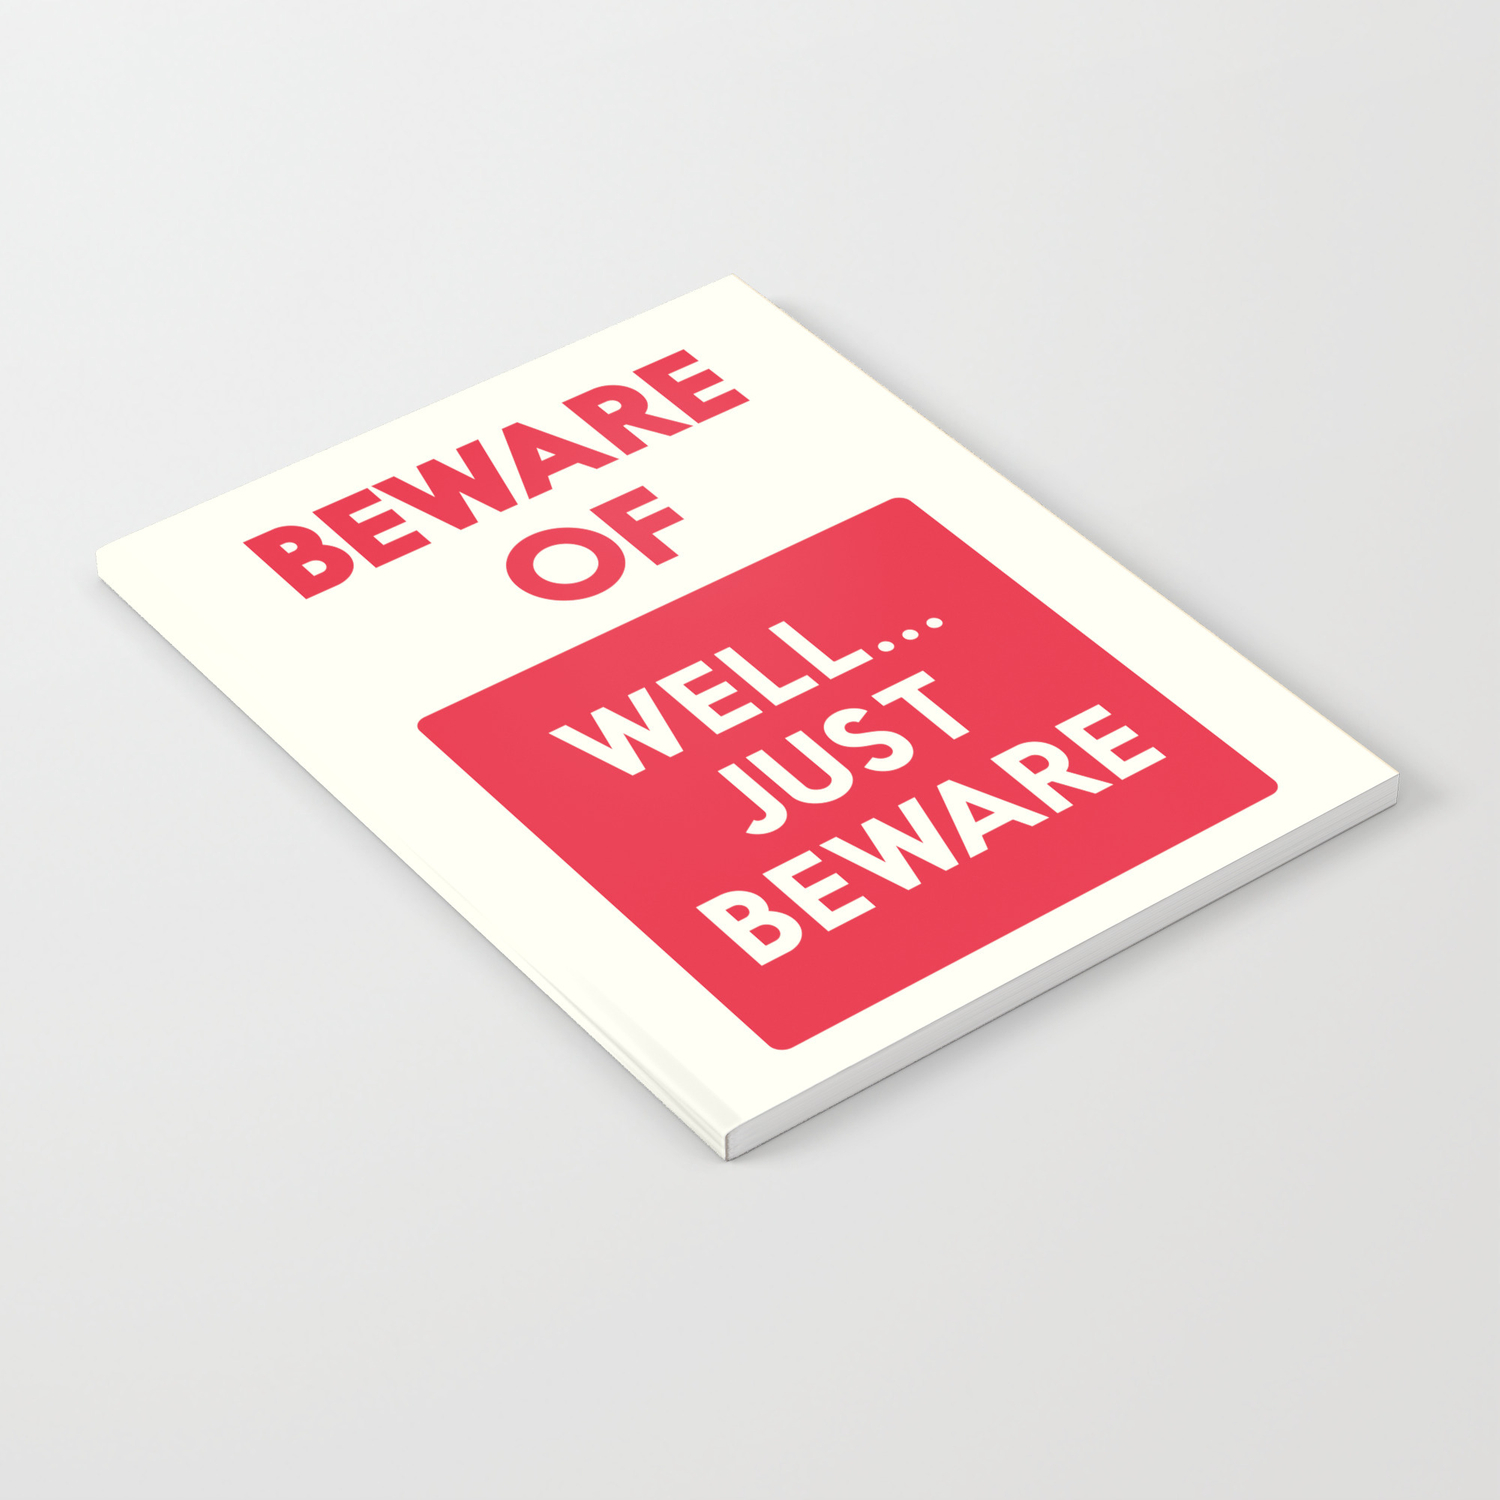 Beware Of Well Just Beware Safety Hazard Gift Ideas Dog Man Cave Warning Signal Vintage Sign Notebook By Stefanoreves Society6